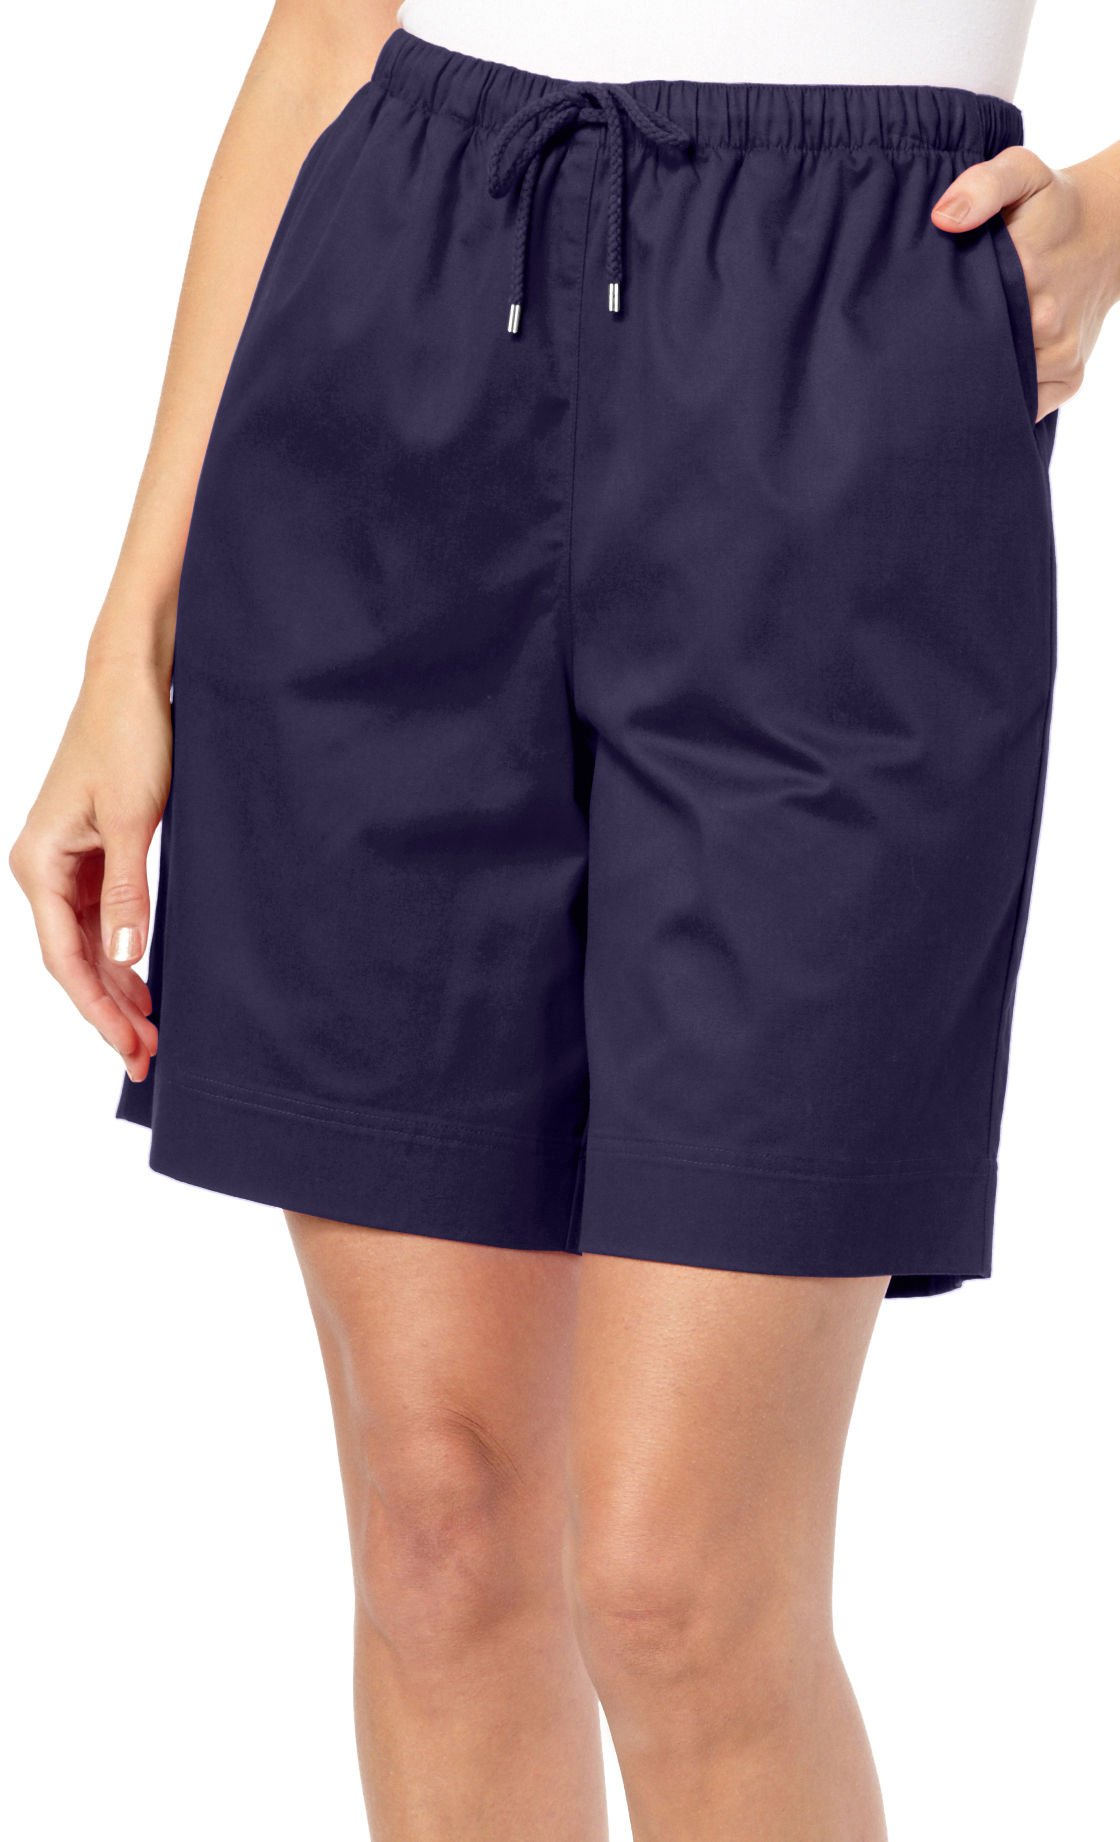 Coral Bay Petite Solid Drawstring Twill Shorts Large Petite Eclipse blue